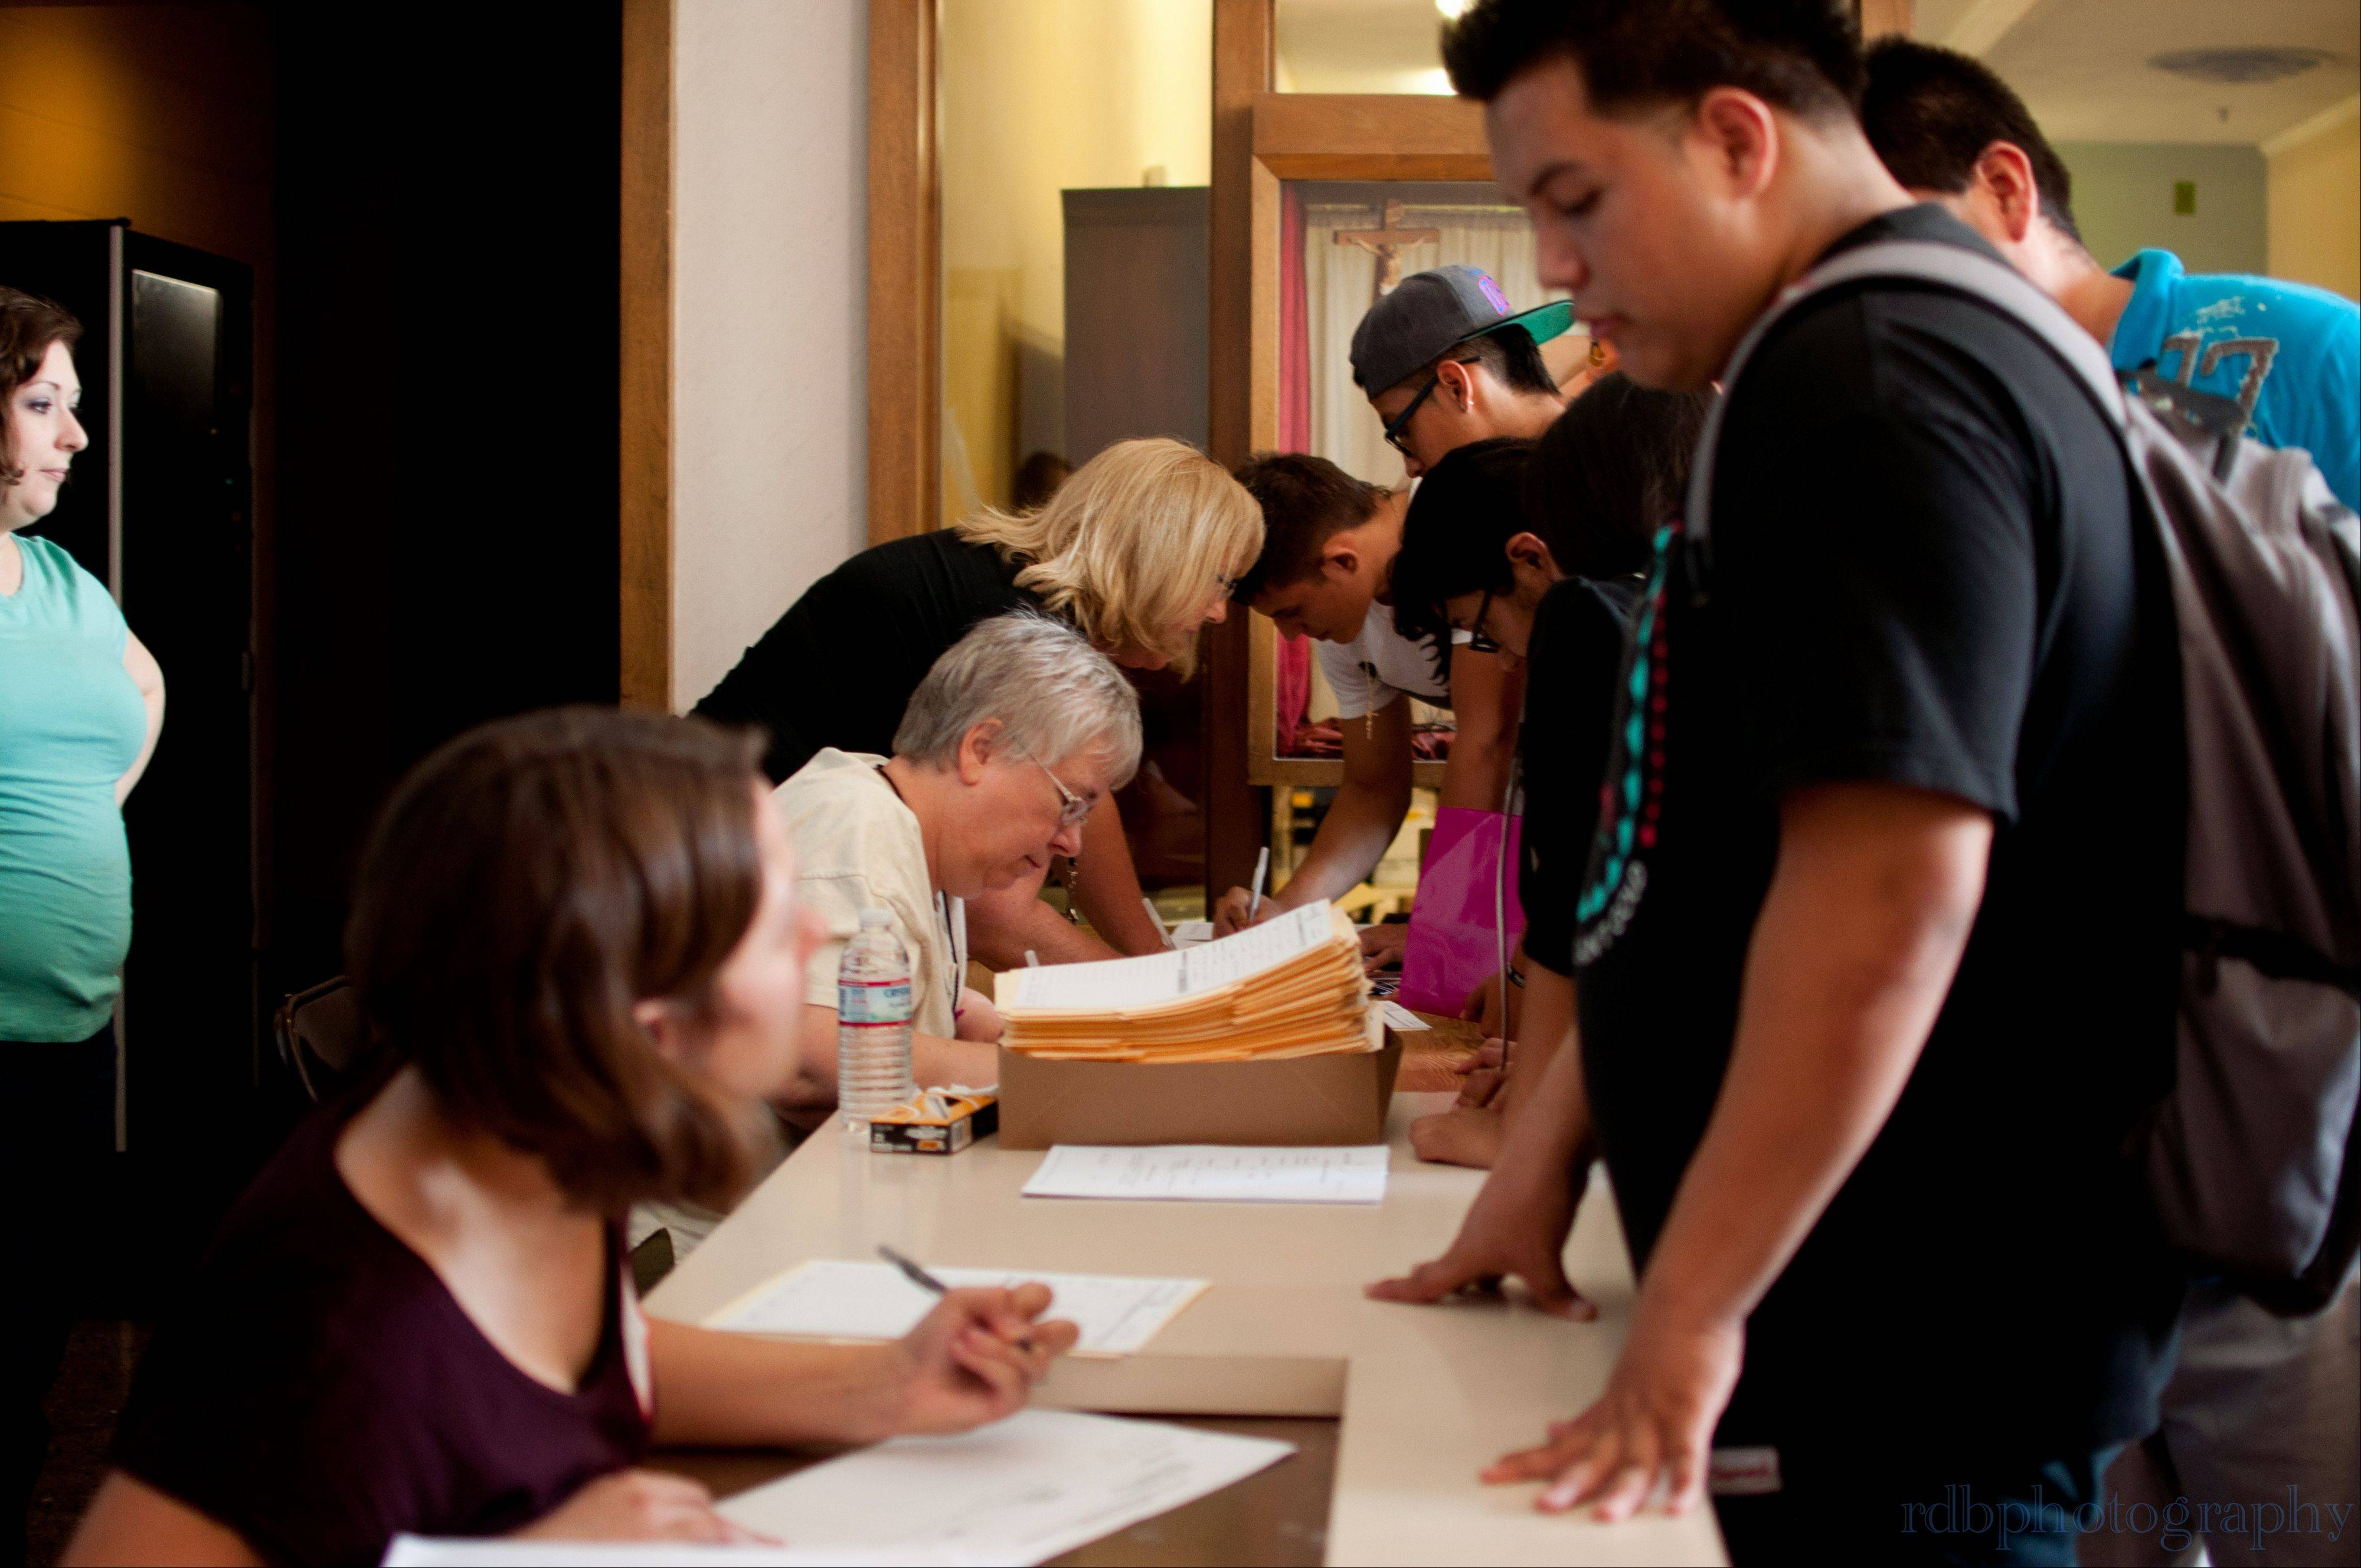 If illegal immigrants qualified for the federal program, volunteers helped them assemble the application paperwork Friday afternoon.